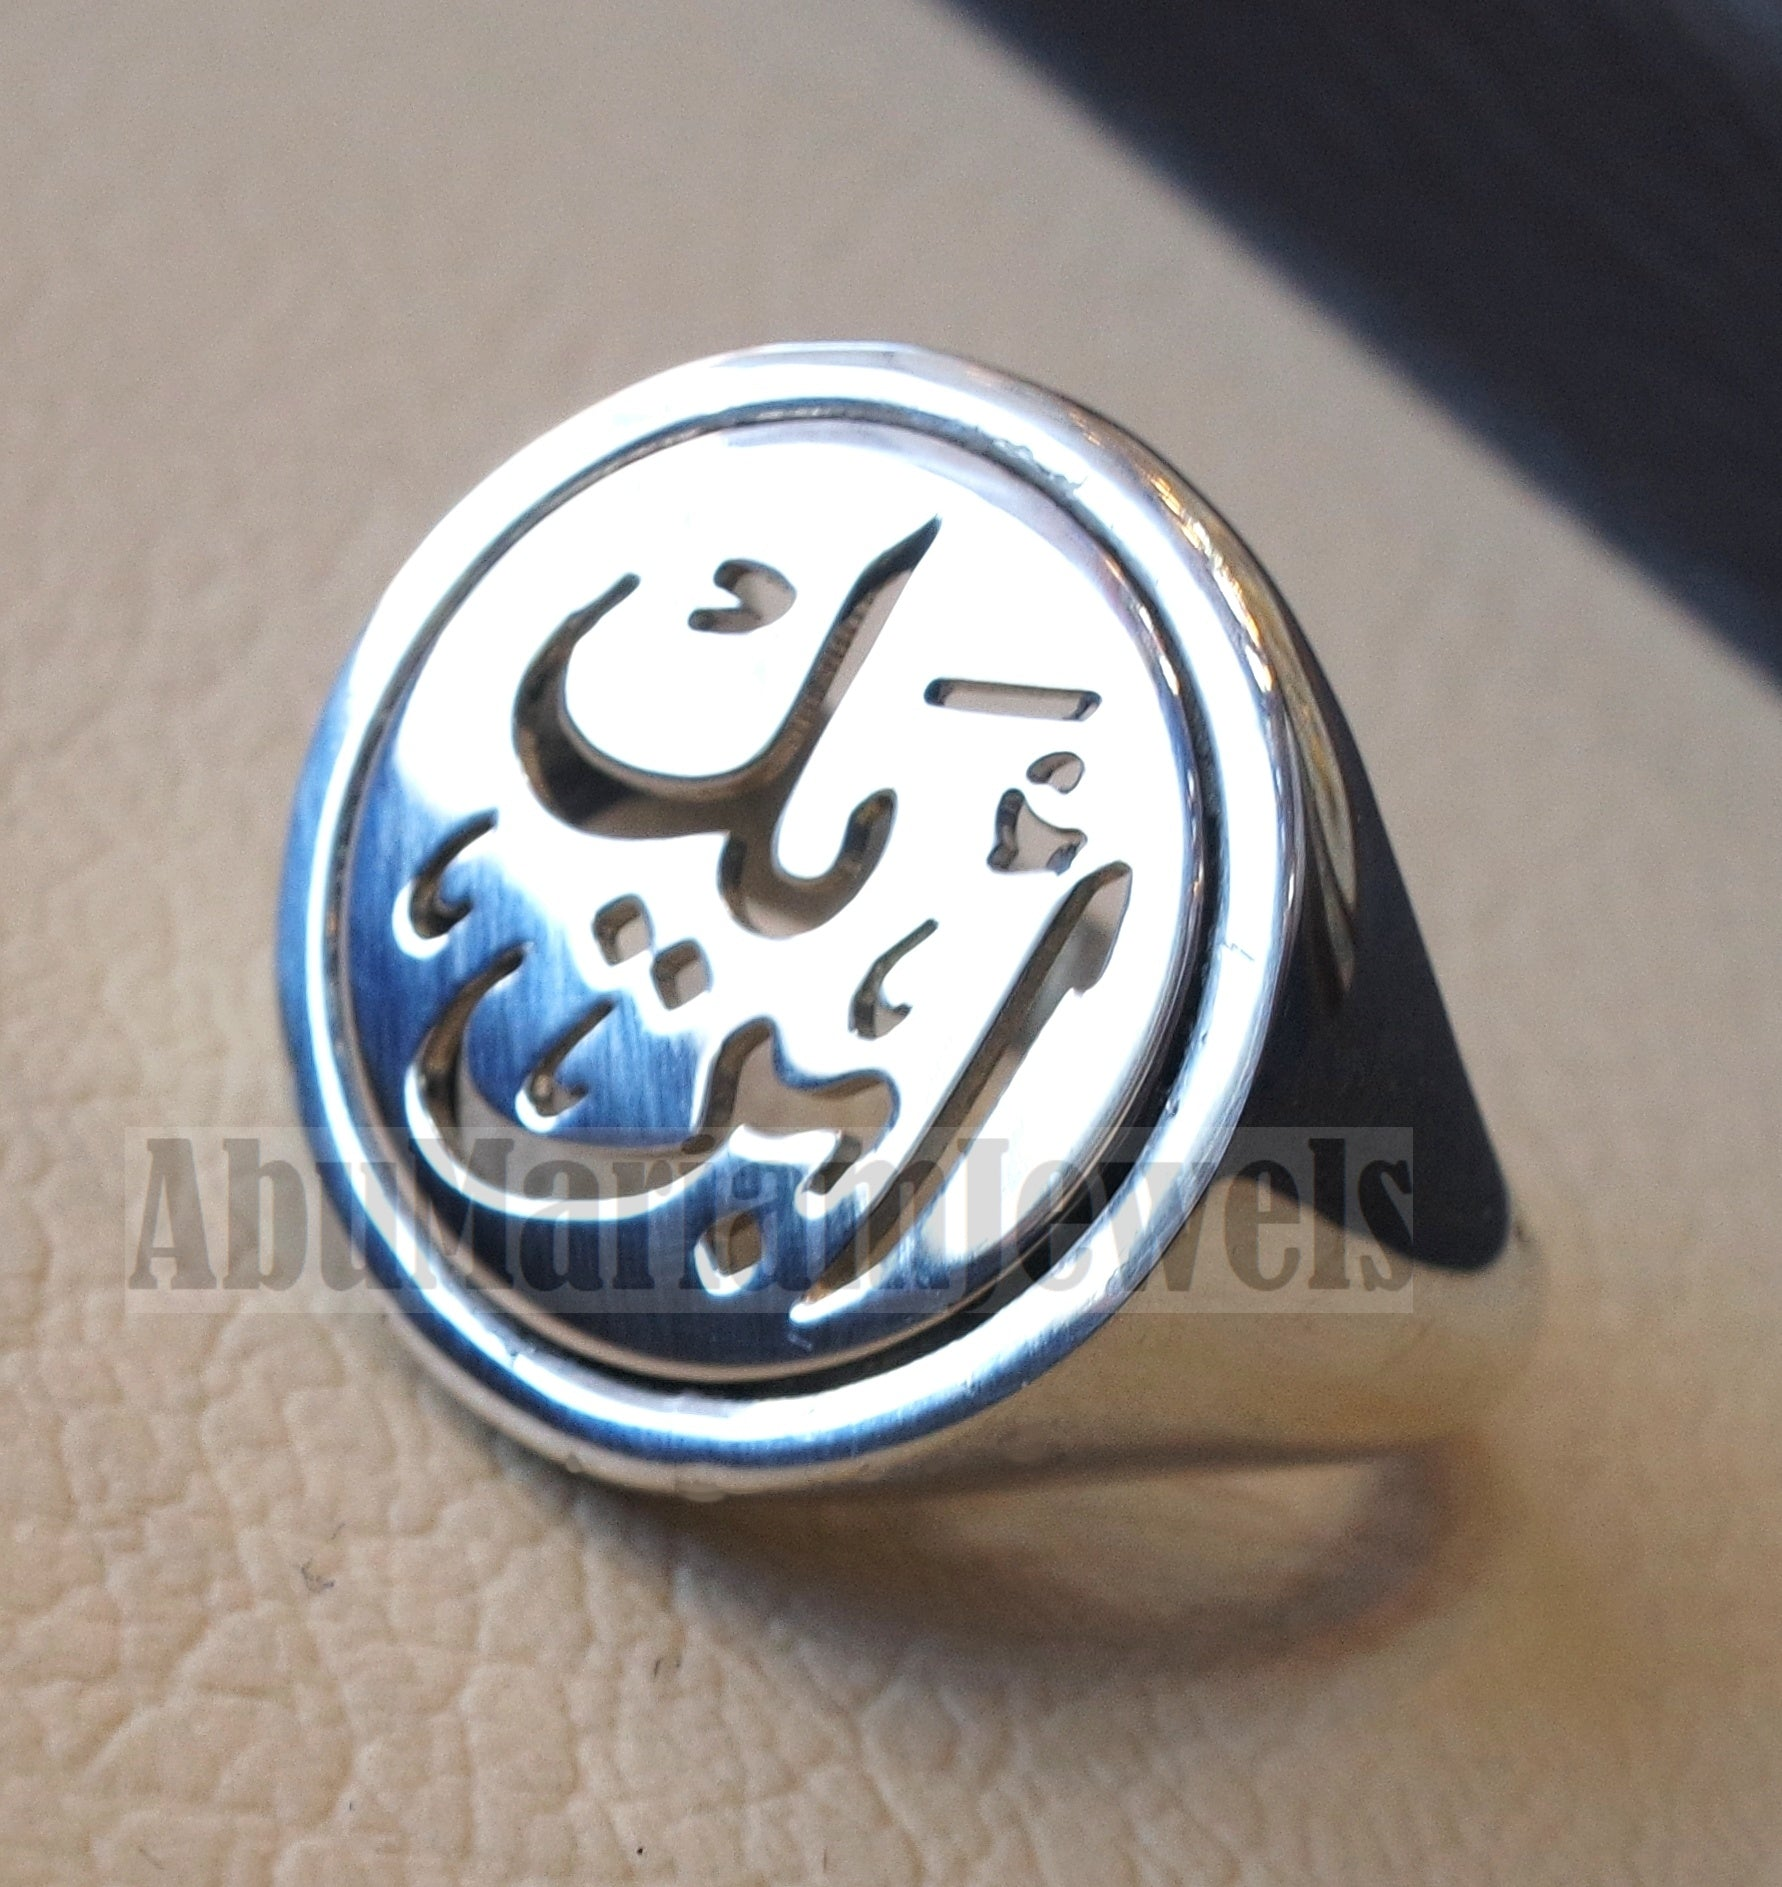 Customized Arabic calligraphy names handmade round heavy ring personalized jewelry sterling silver 925 any size AMM1002 خاتم اسم تفصيل